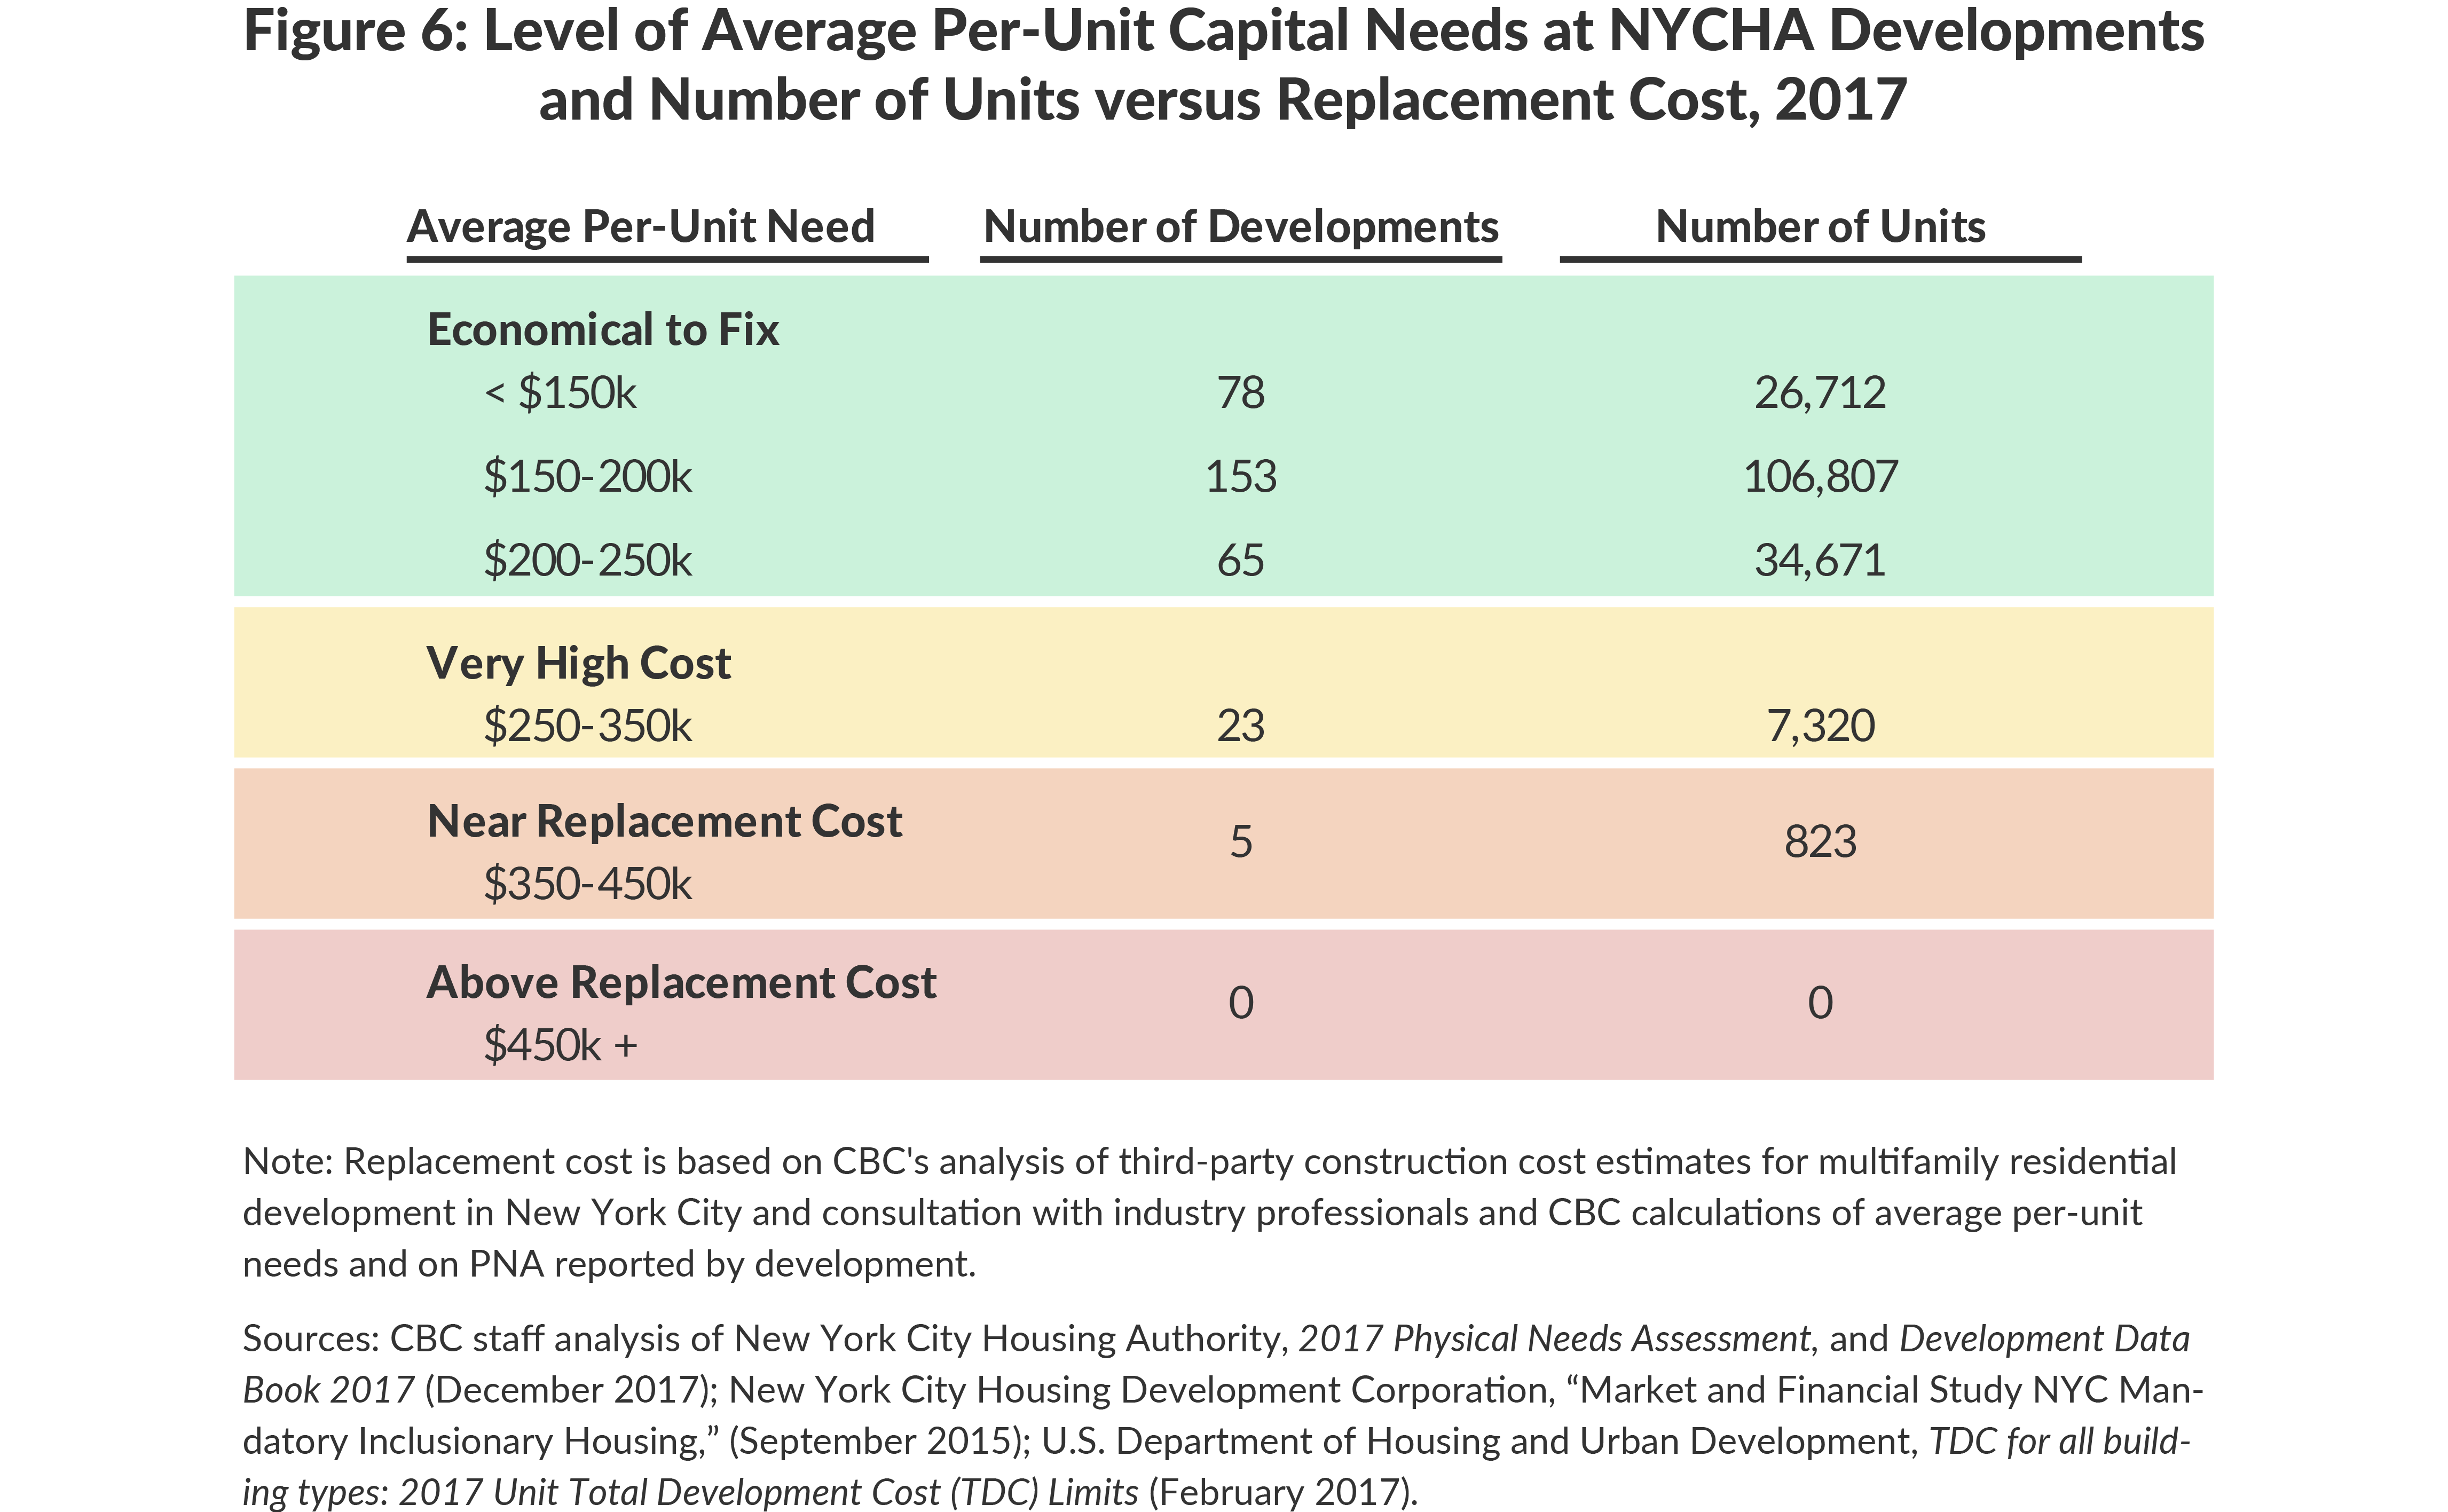 Figure 6: Level of Average Per-Unit Capital Needs at NYCHA Developmentsand Number of Units versus Replacement Cost, 2017